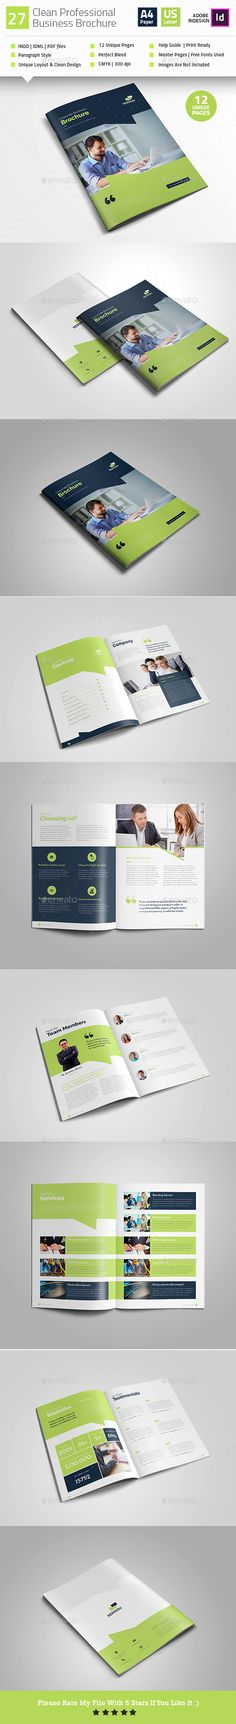 #Professional #Business #Brochure V35 - Corporate Brochures Download here: https://graphicriver.net/item/professional-business-brochure-v27/19248319?ref=alena994